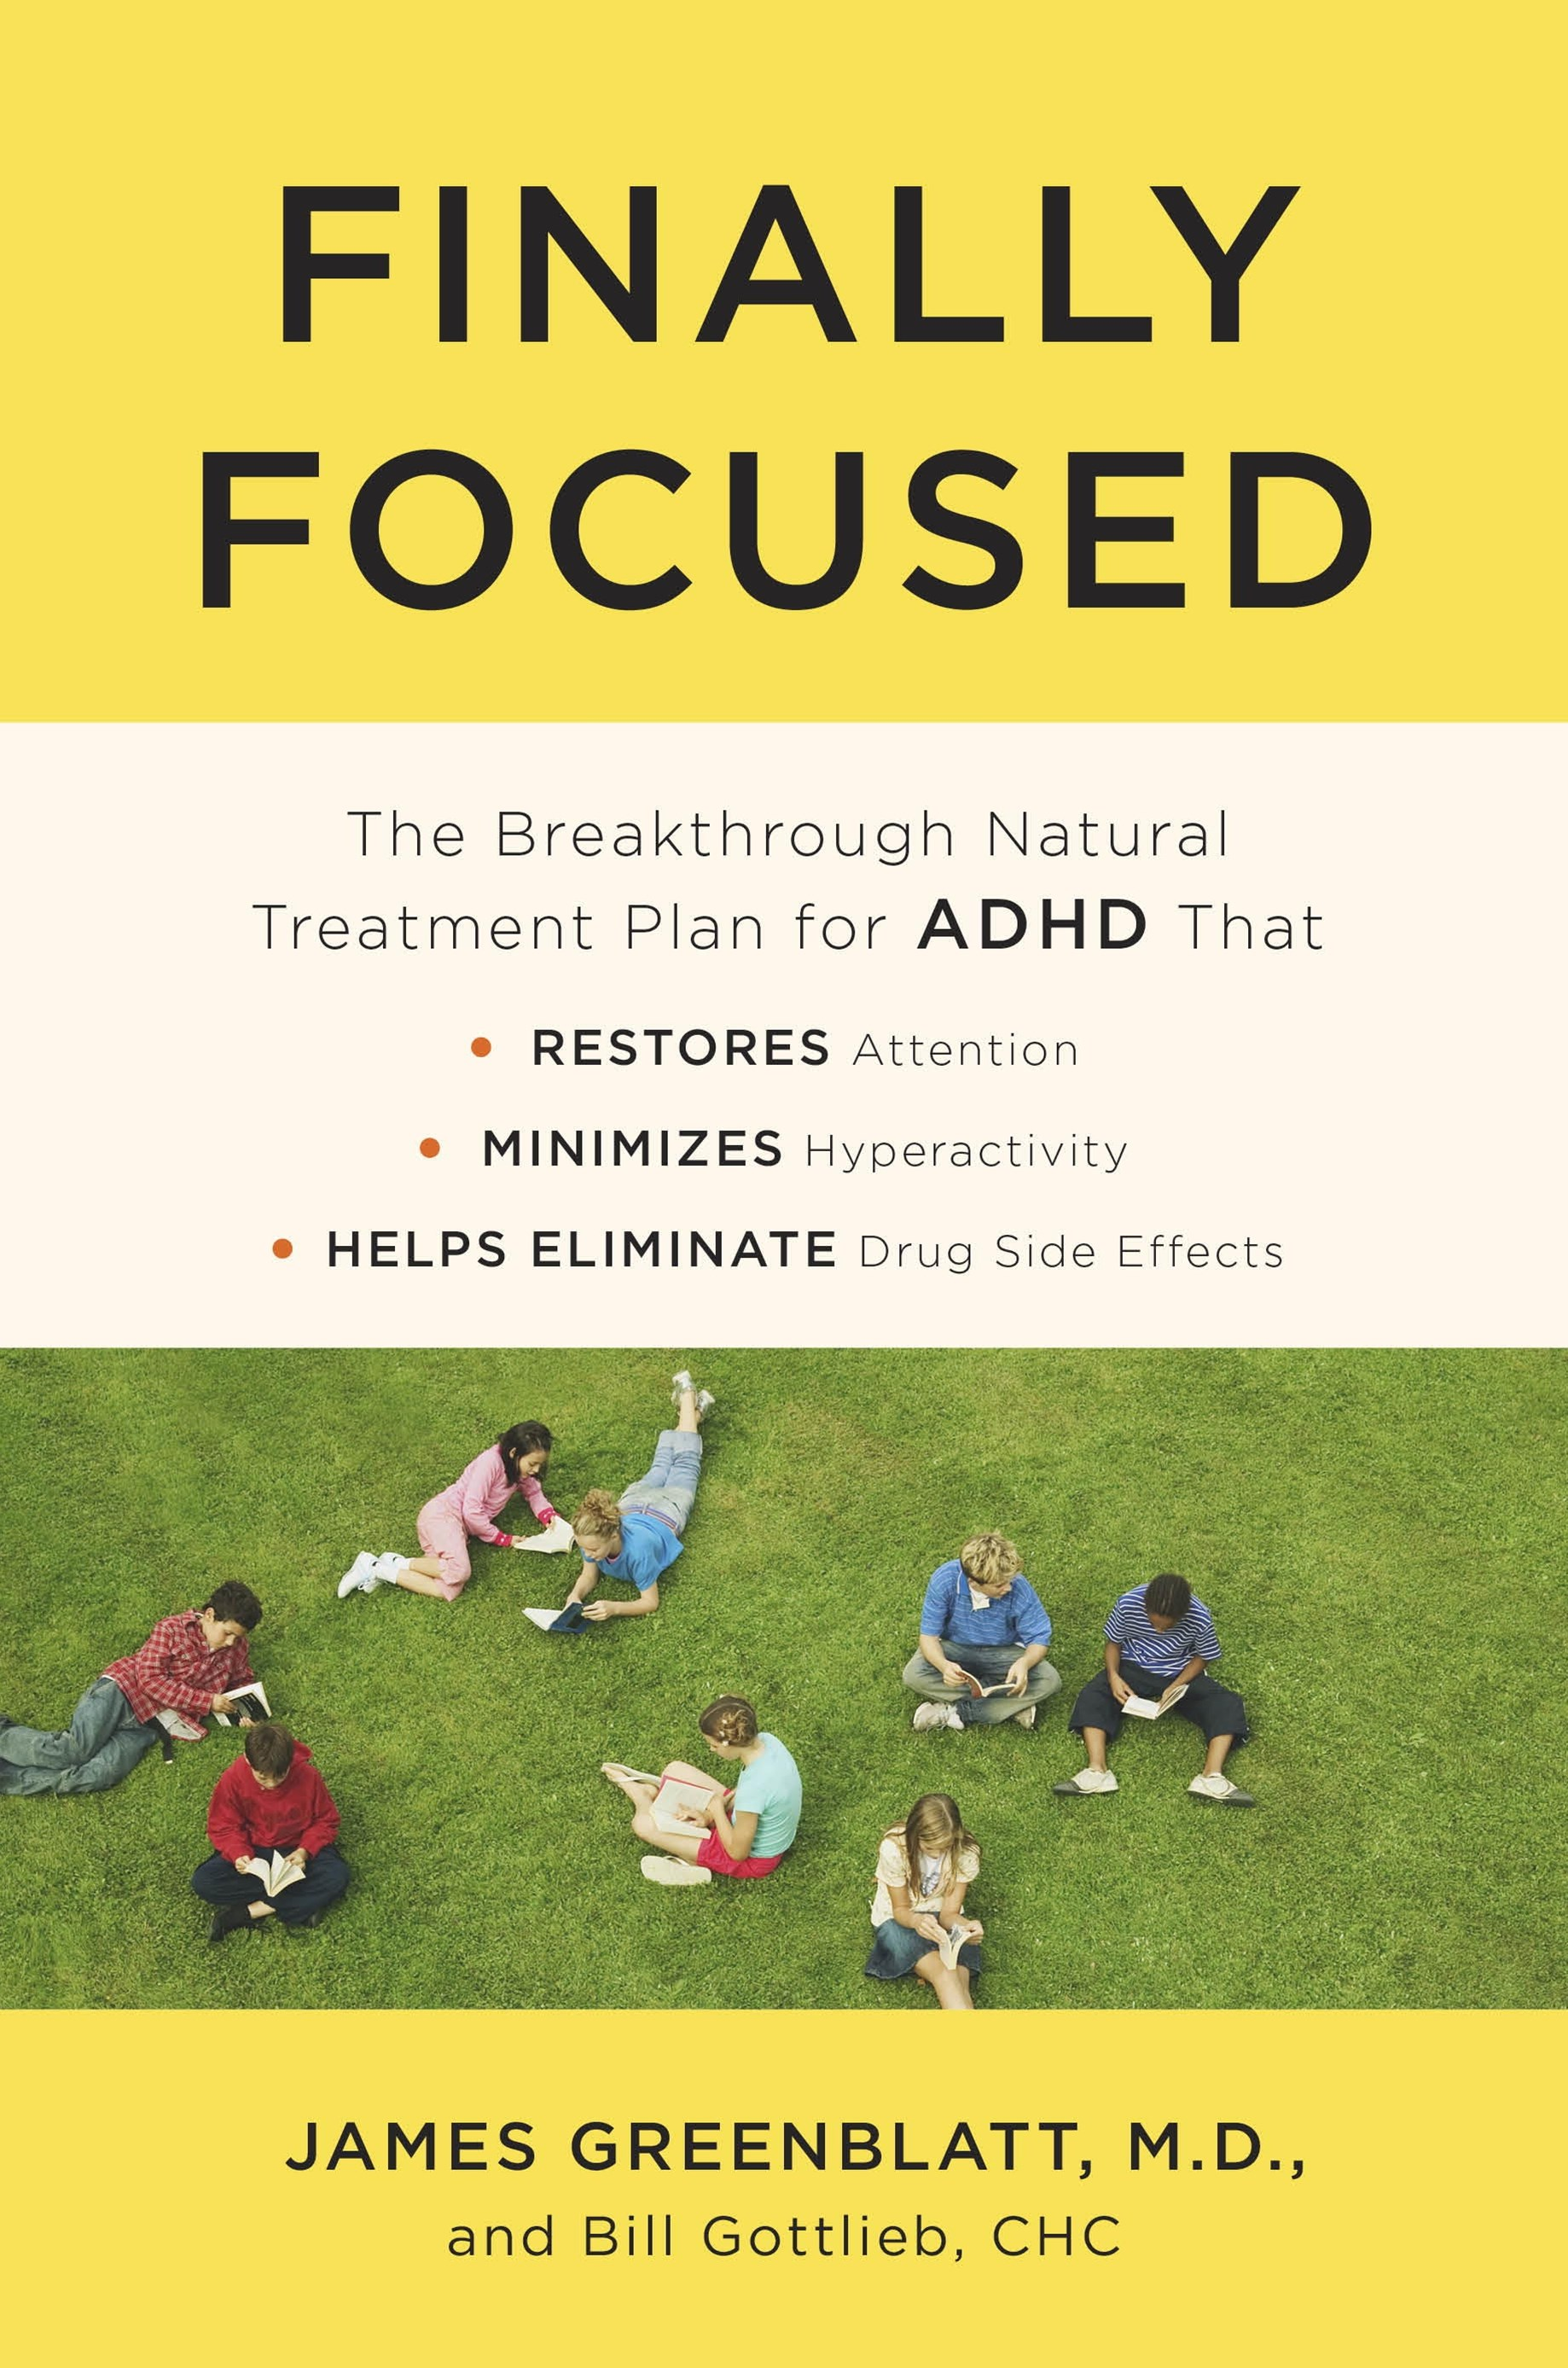 Finally Focused: The Breakthrough Natural Treatment Plan For Adhd That Restores Attention, Minimizes Hyperactivity, And Helps Eliminate Drug